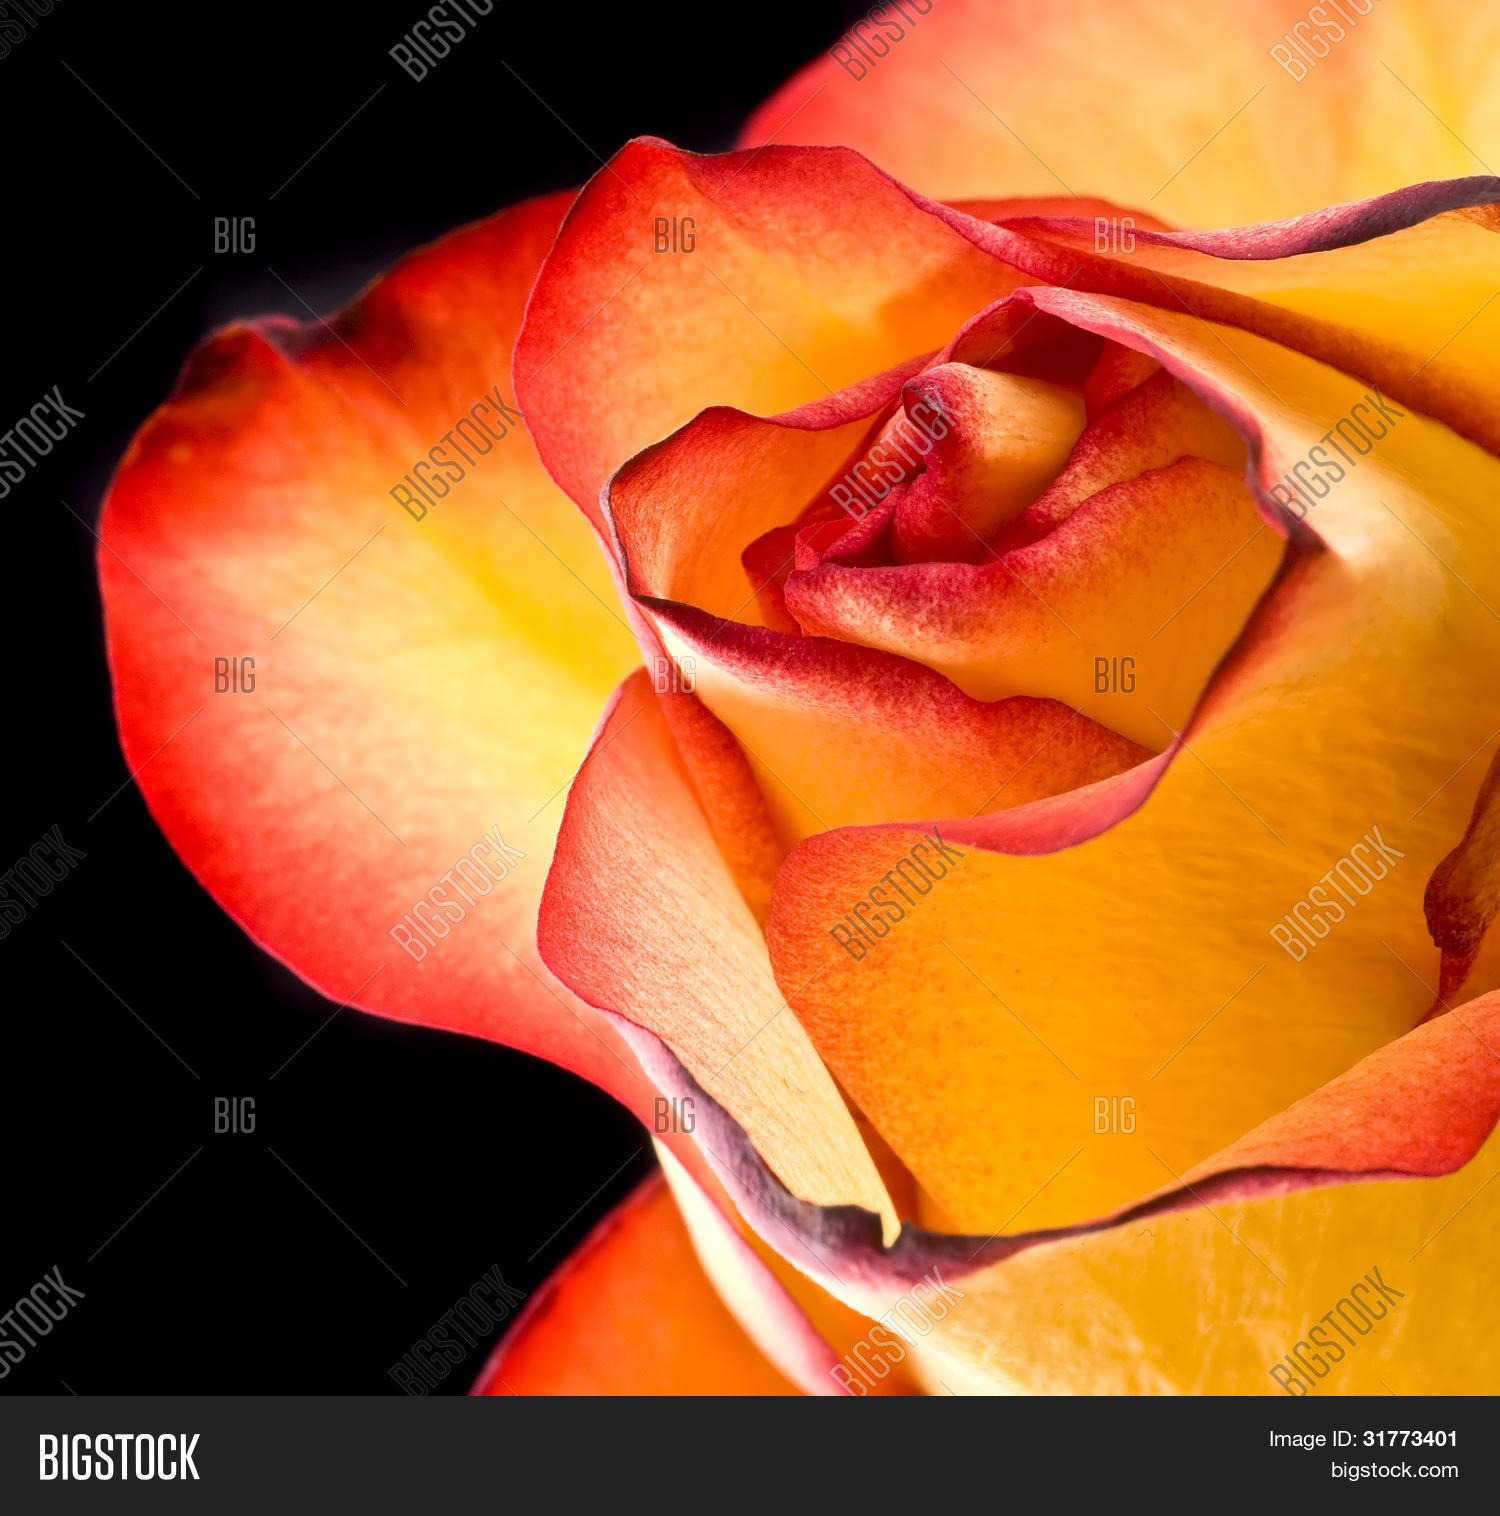 Fire tipped yellow image photo free trial bigstock fire tipped a yellow rose with red tips boldly contrasts on a black background mightylinksfo